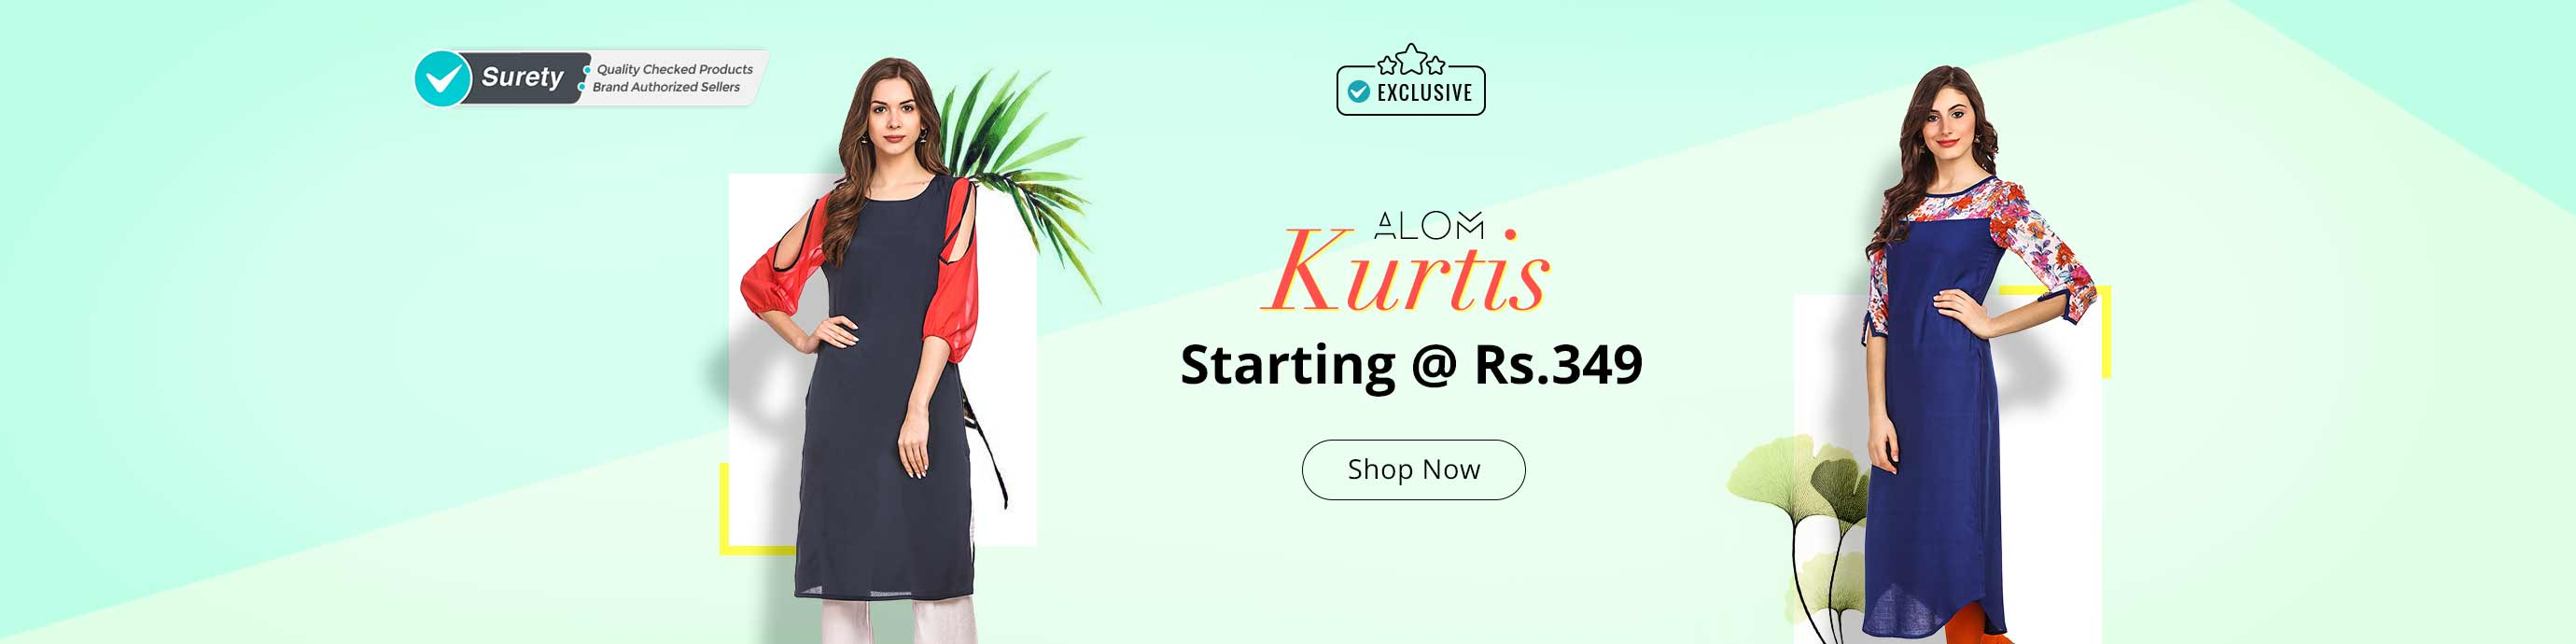 Shopclues - Alom Women's Stitched Kurta Upto 80% Discount Starts Rs.349